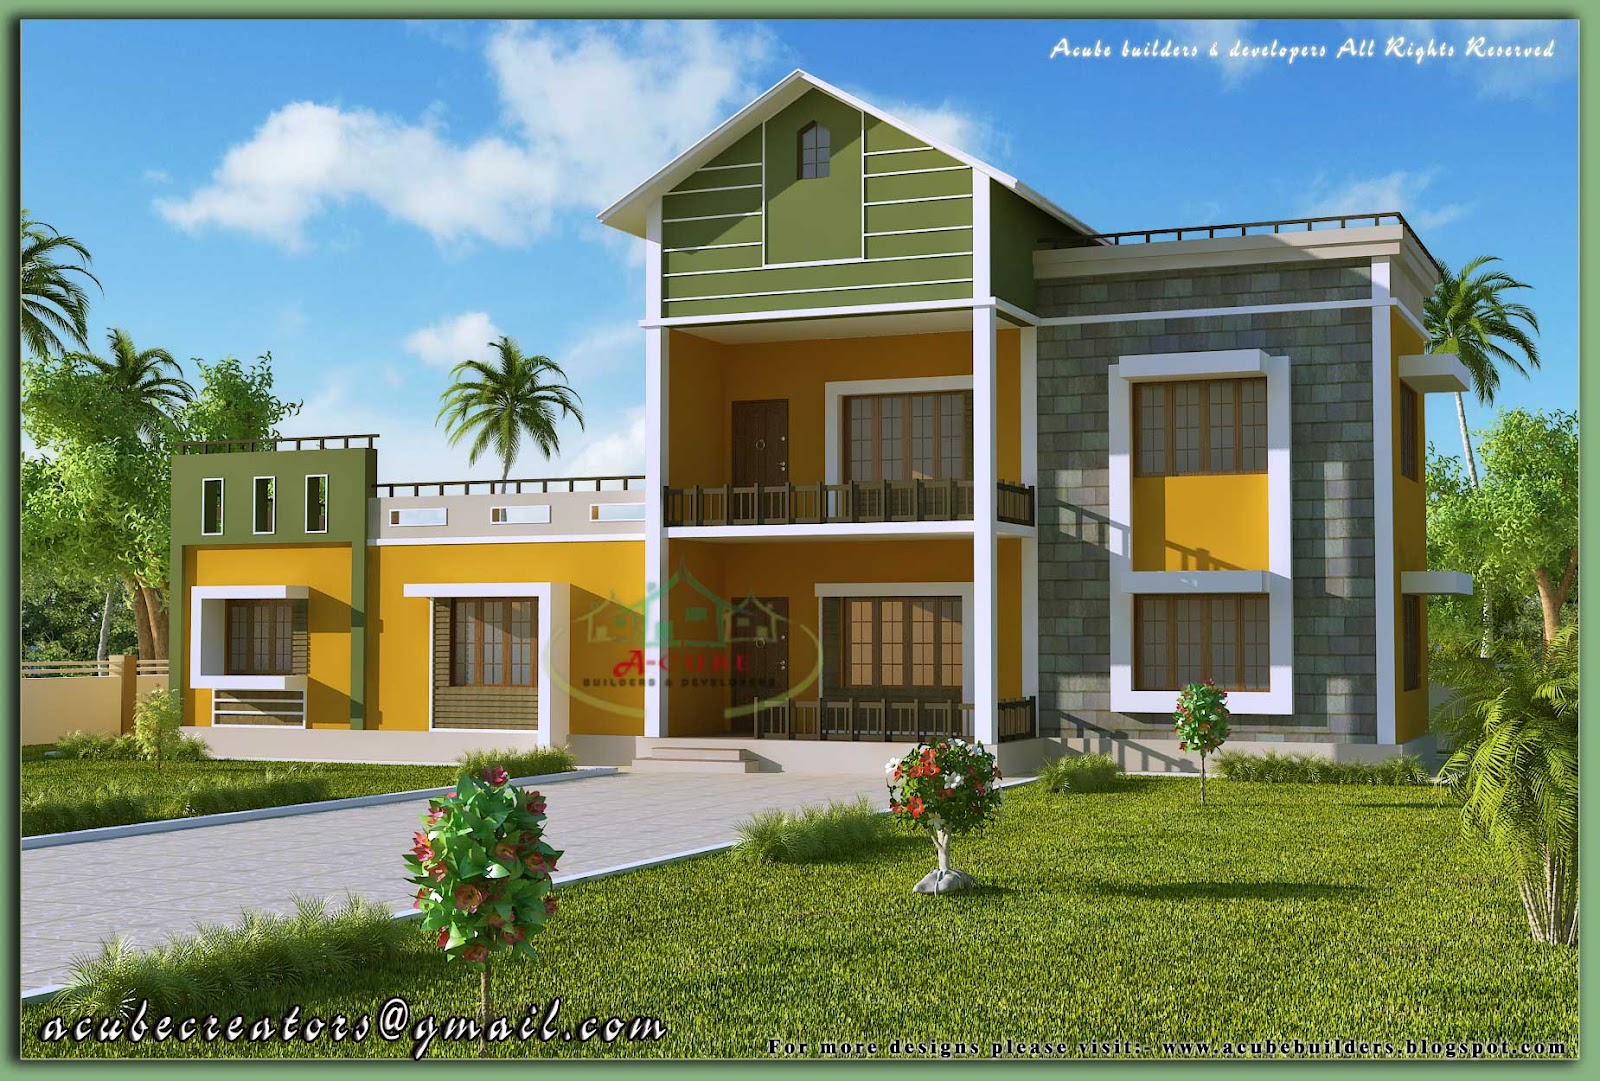 2 storey sloping roof house 1700 sq ft plan 124 - Model house design with floor plan ...